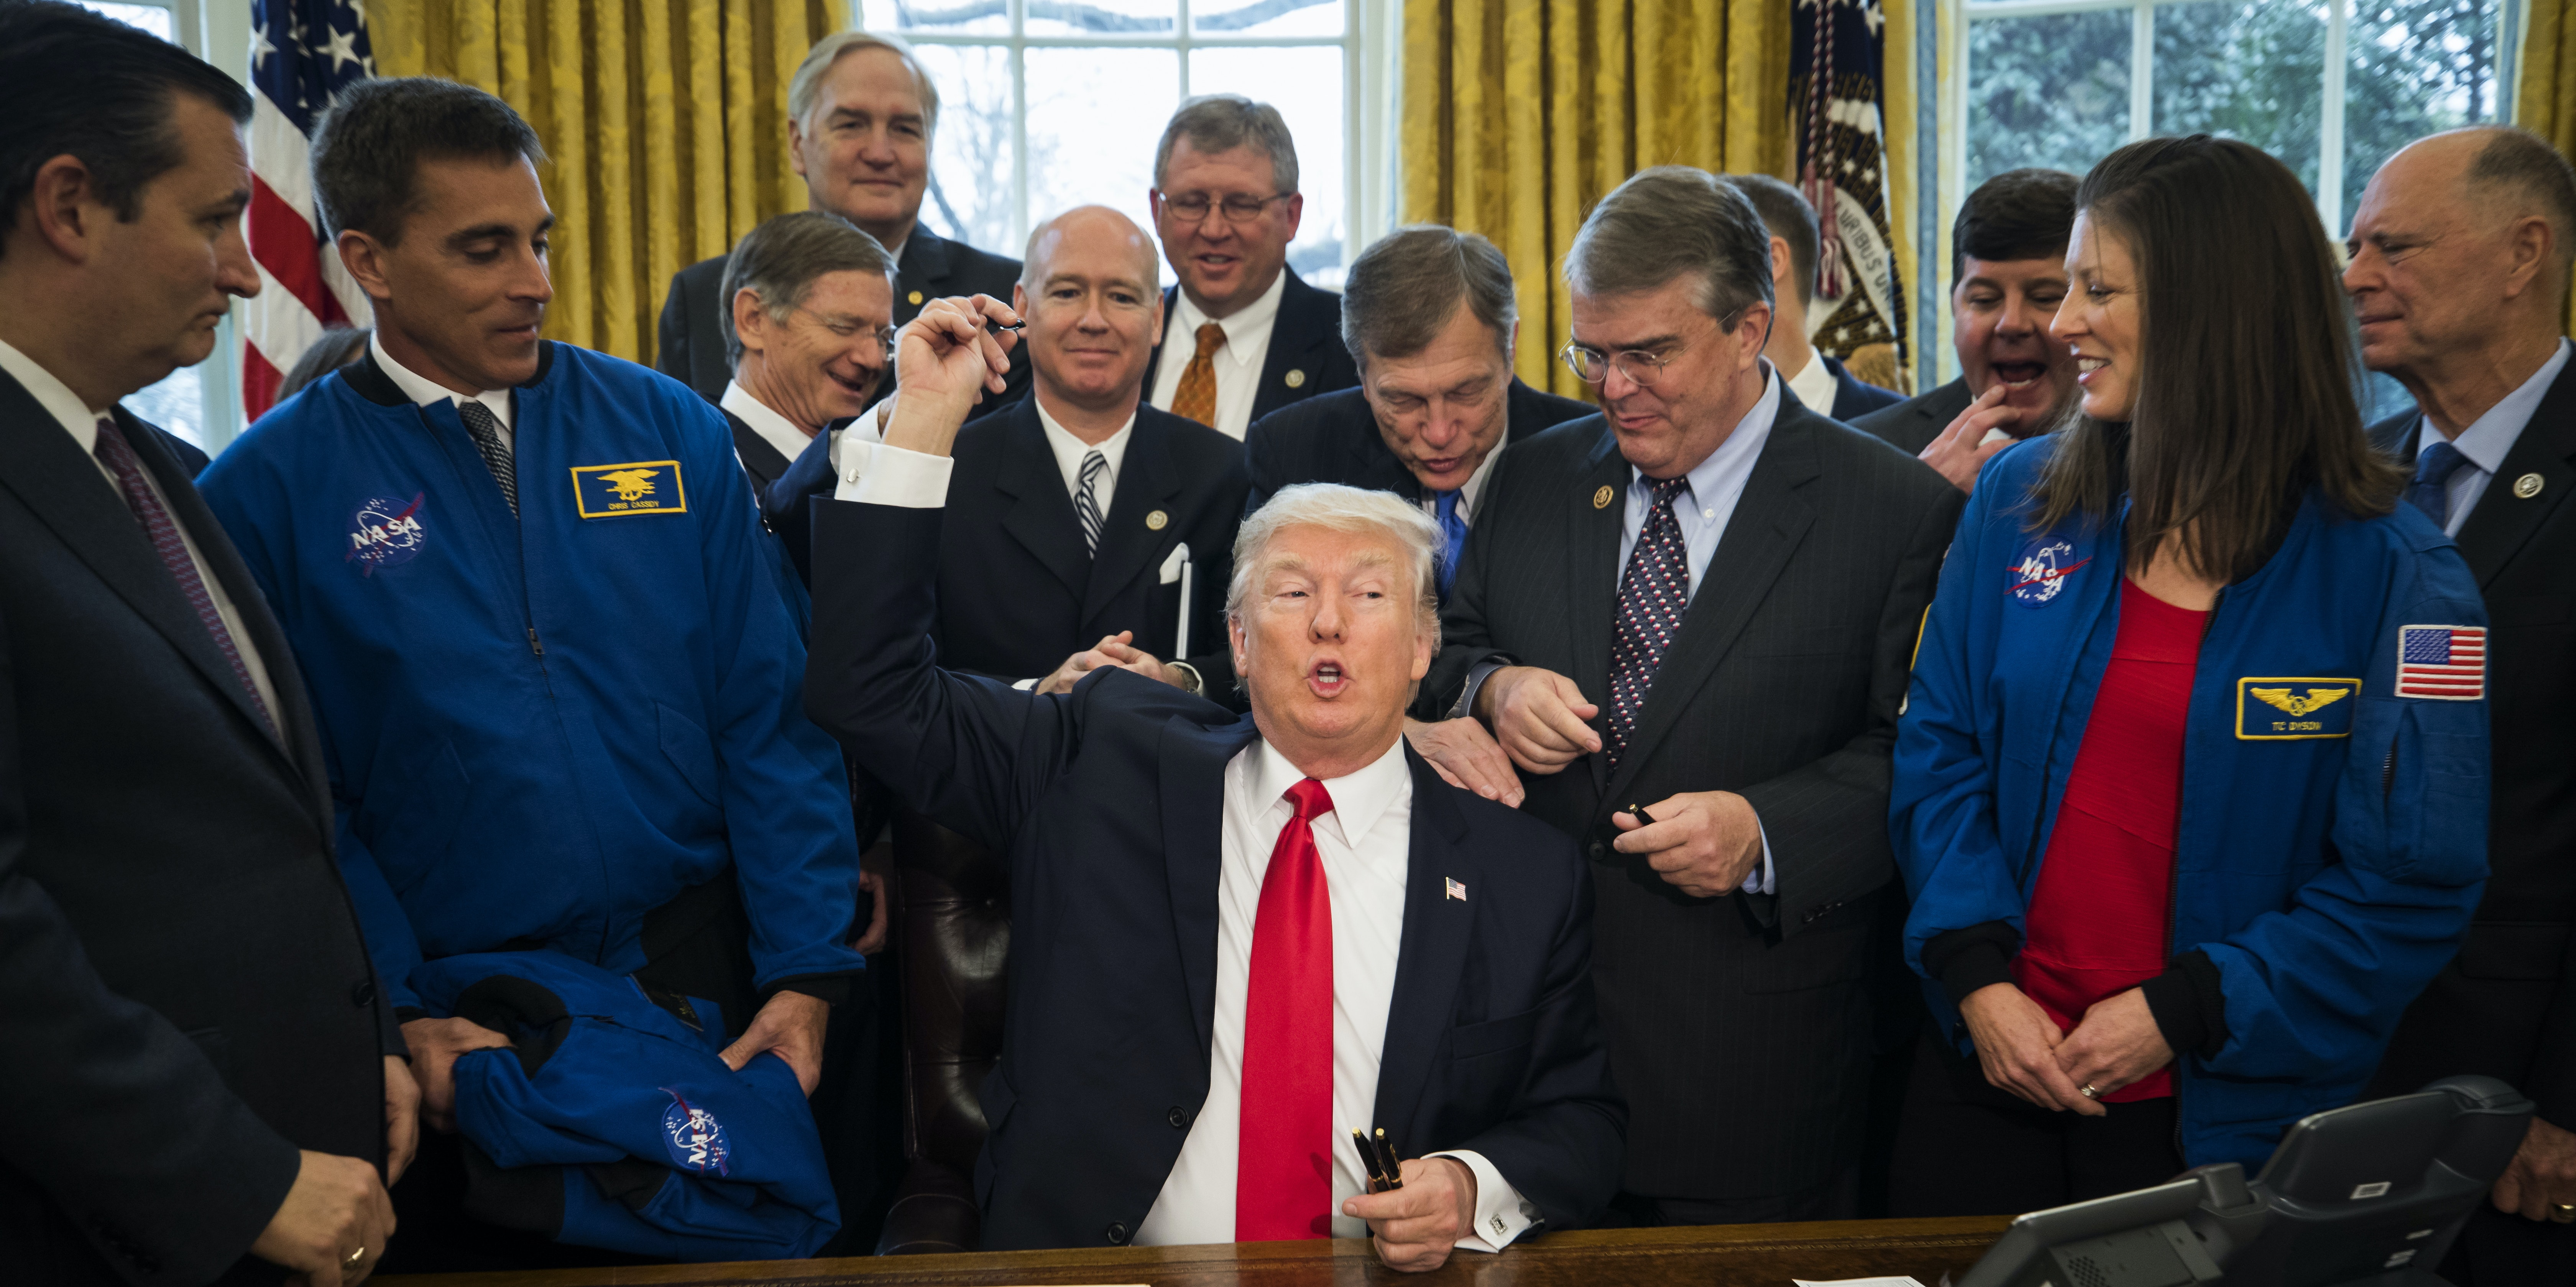 WASHINGTON, DC - MARCH 21:  U.S. President Donald Trump hands out pens after signing the NASA transition authorization act in the Oval Office of the White House March 21, 2017 in Washington, DC. The bill boosts NASA's overall budget $19.5 billion, while refocusing efforts on deep space exploration and a manned mission to Mars.  (Photo by Jim Lo Scalzo-Pool/Getty Images)